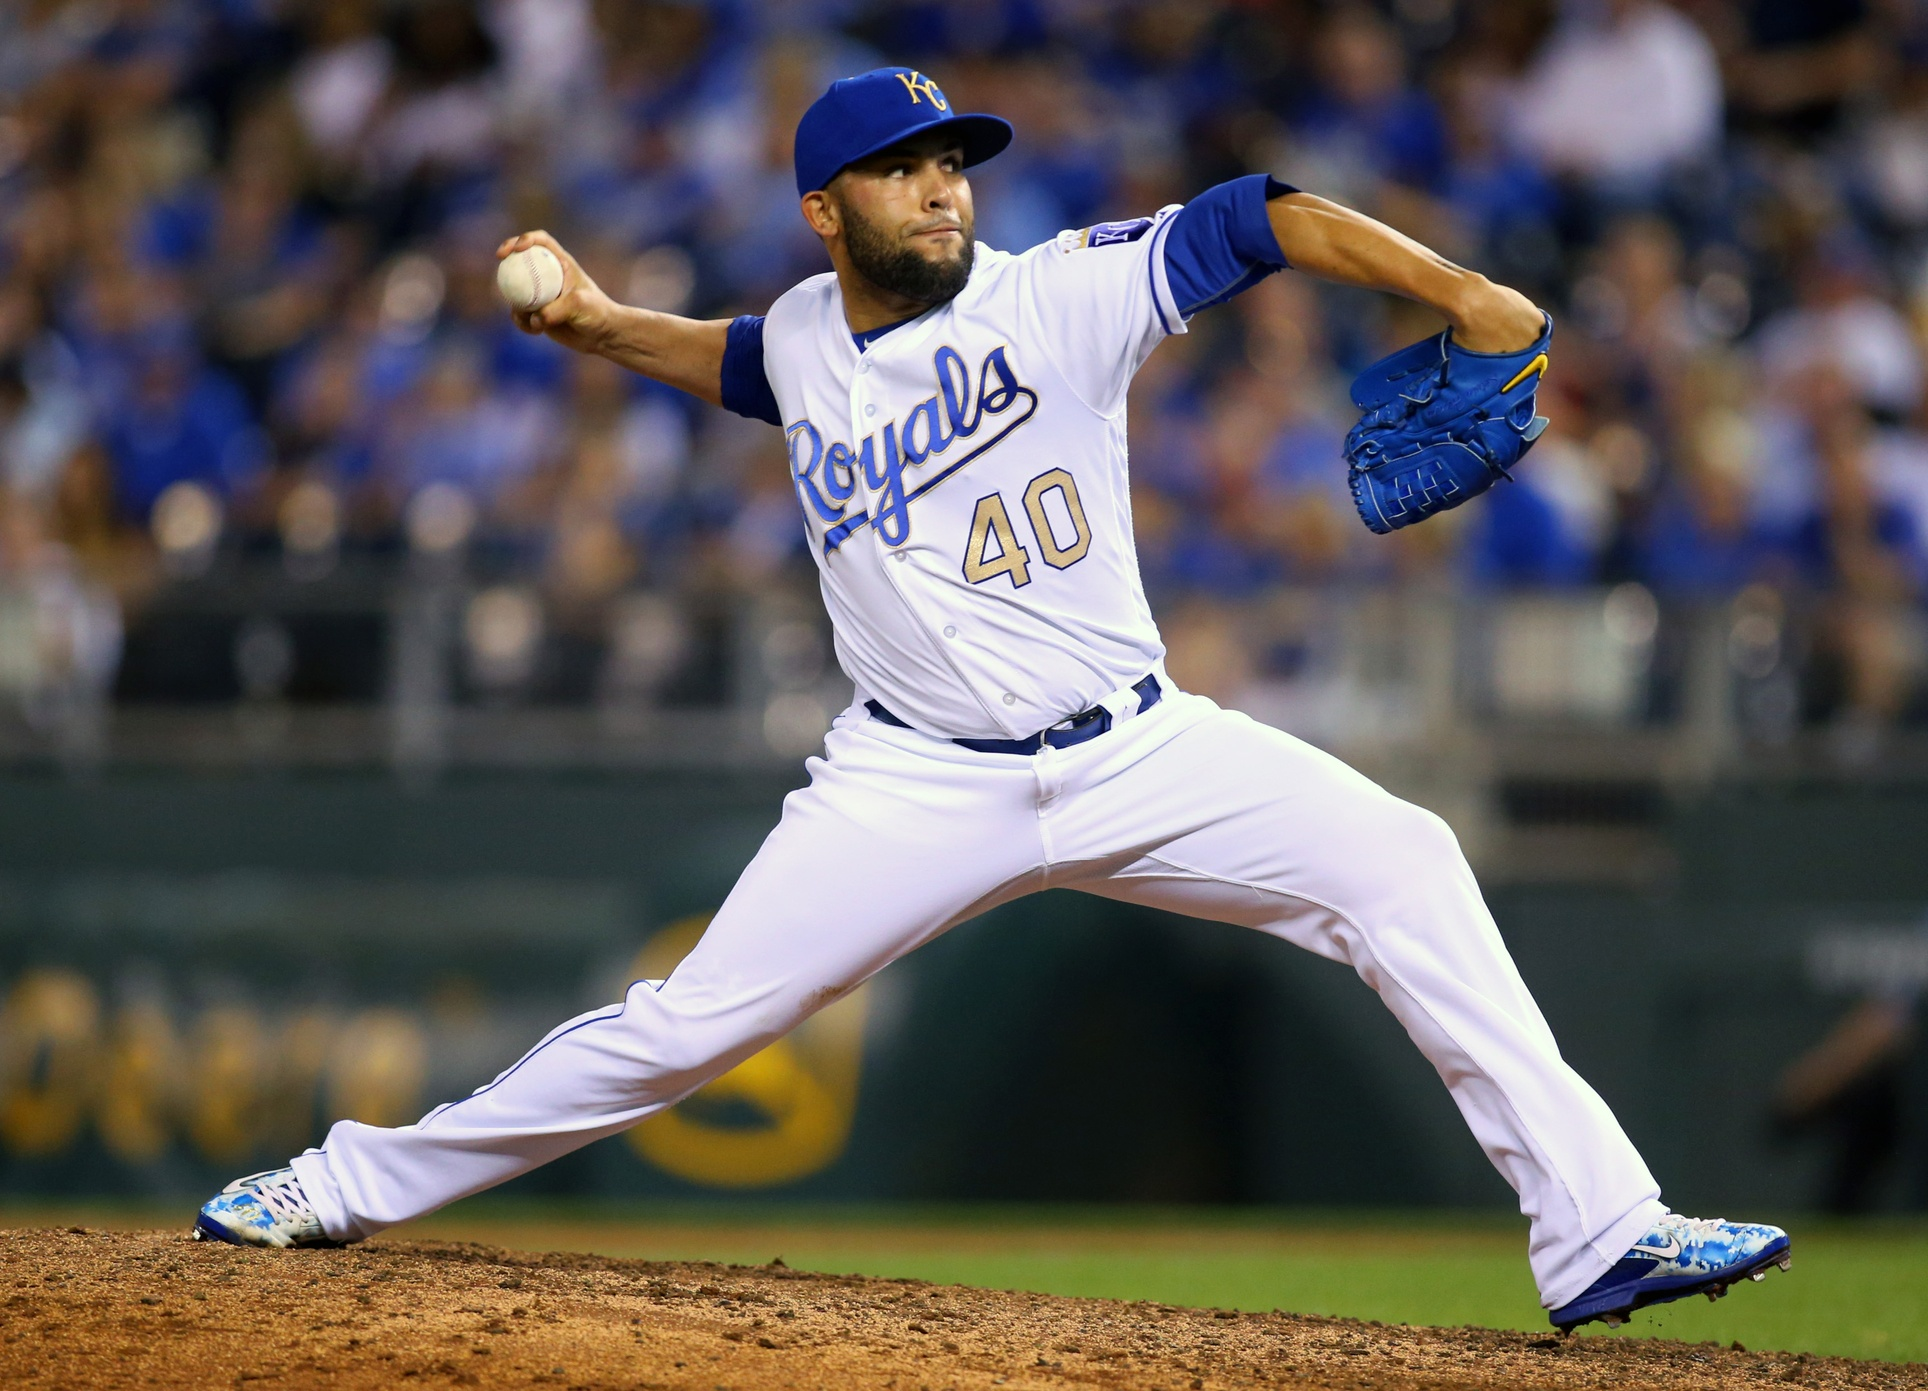 Sep 8, 2017; Kansas City, MO, USA; Kansas City Royals relief pitcher Kelvin Herrera (40) pitches against the Minnesota Twins in the eighth inning at Kauffman Stadium. Mandatory Credit: Jay Biggerstaff-USA TODAY Sports